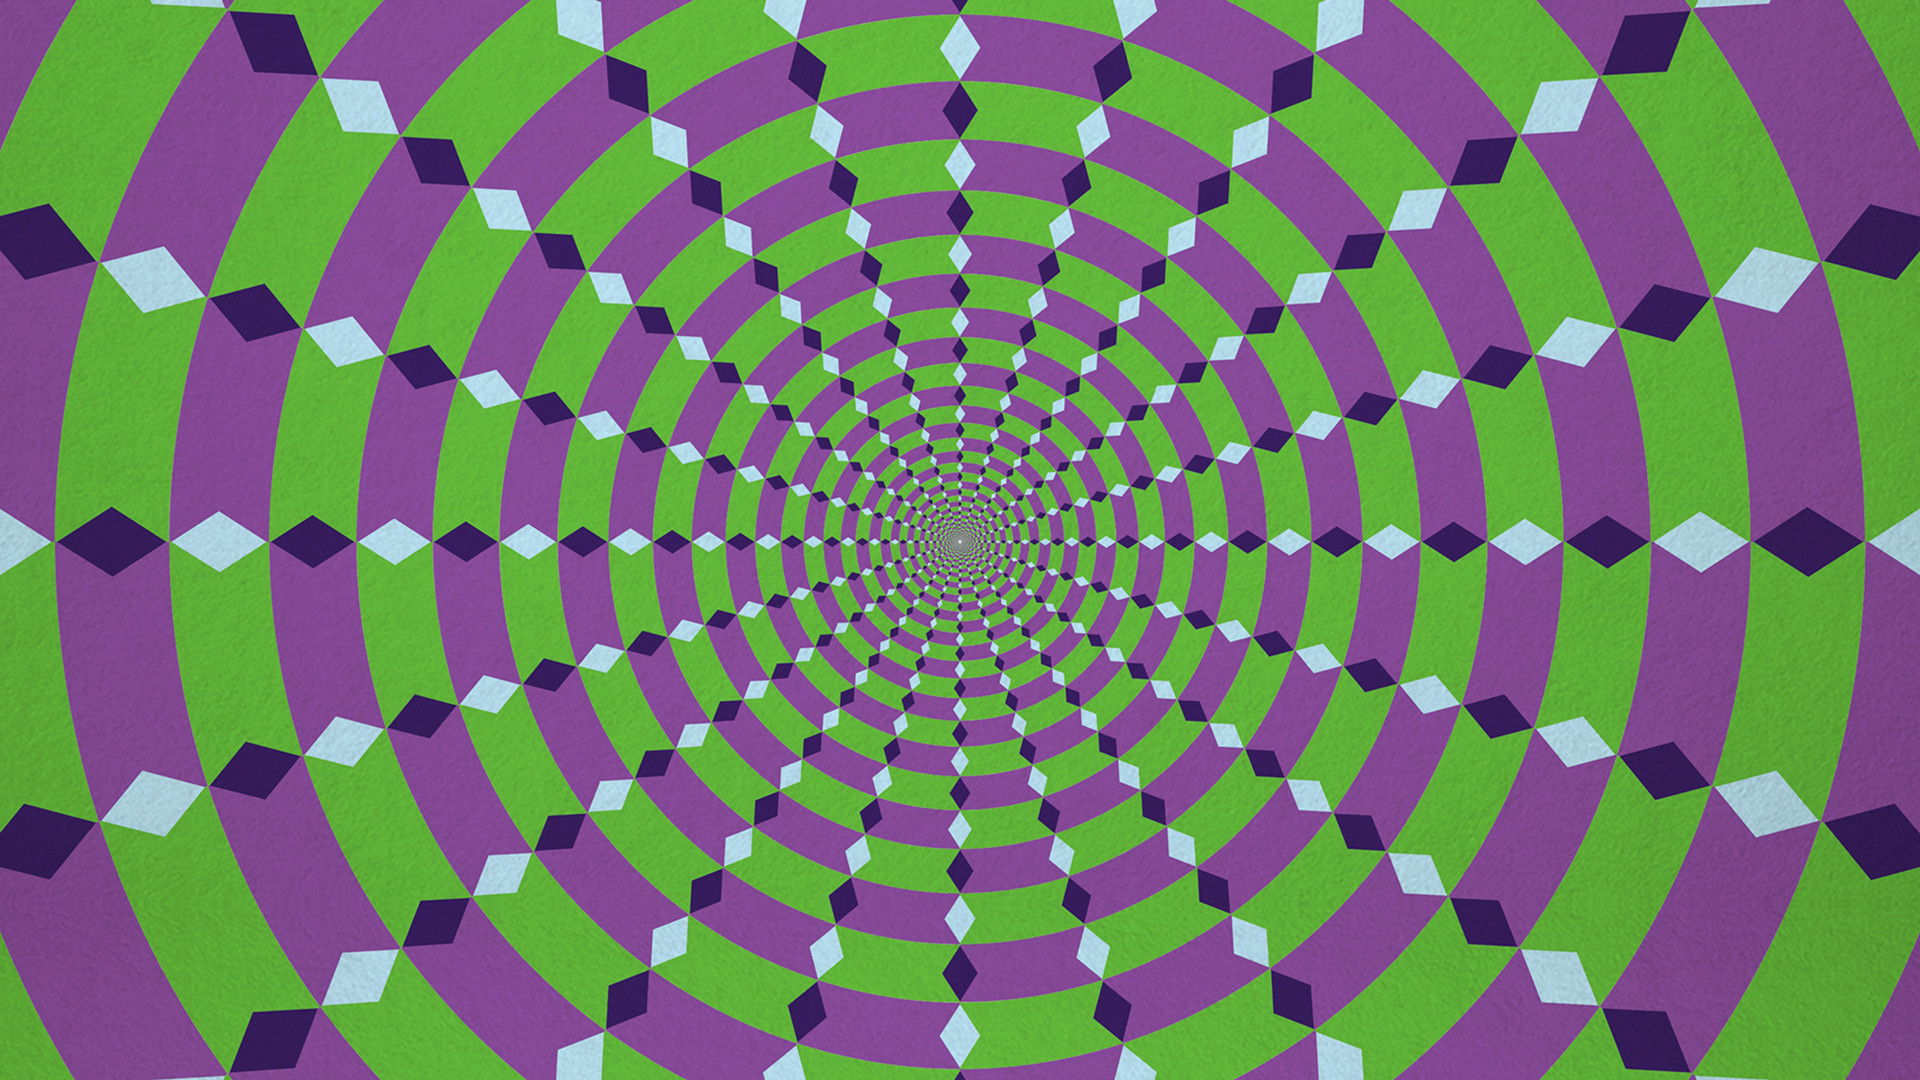 Includes famous optical illusions like the Hermann Grid, the café wall  illusion, Fraser's Spiral, motion illusions and more!